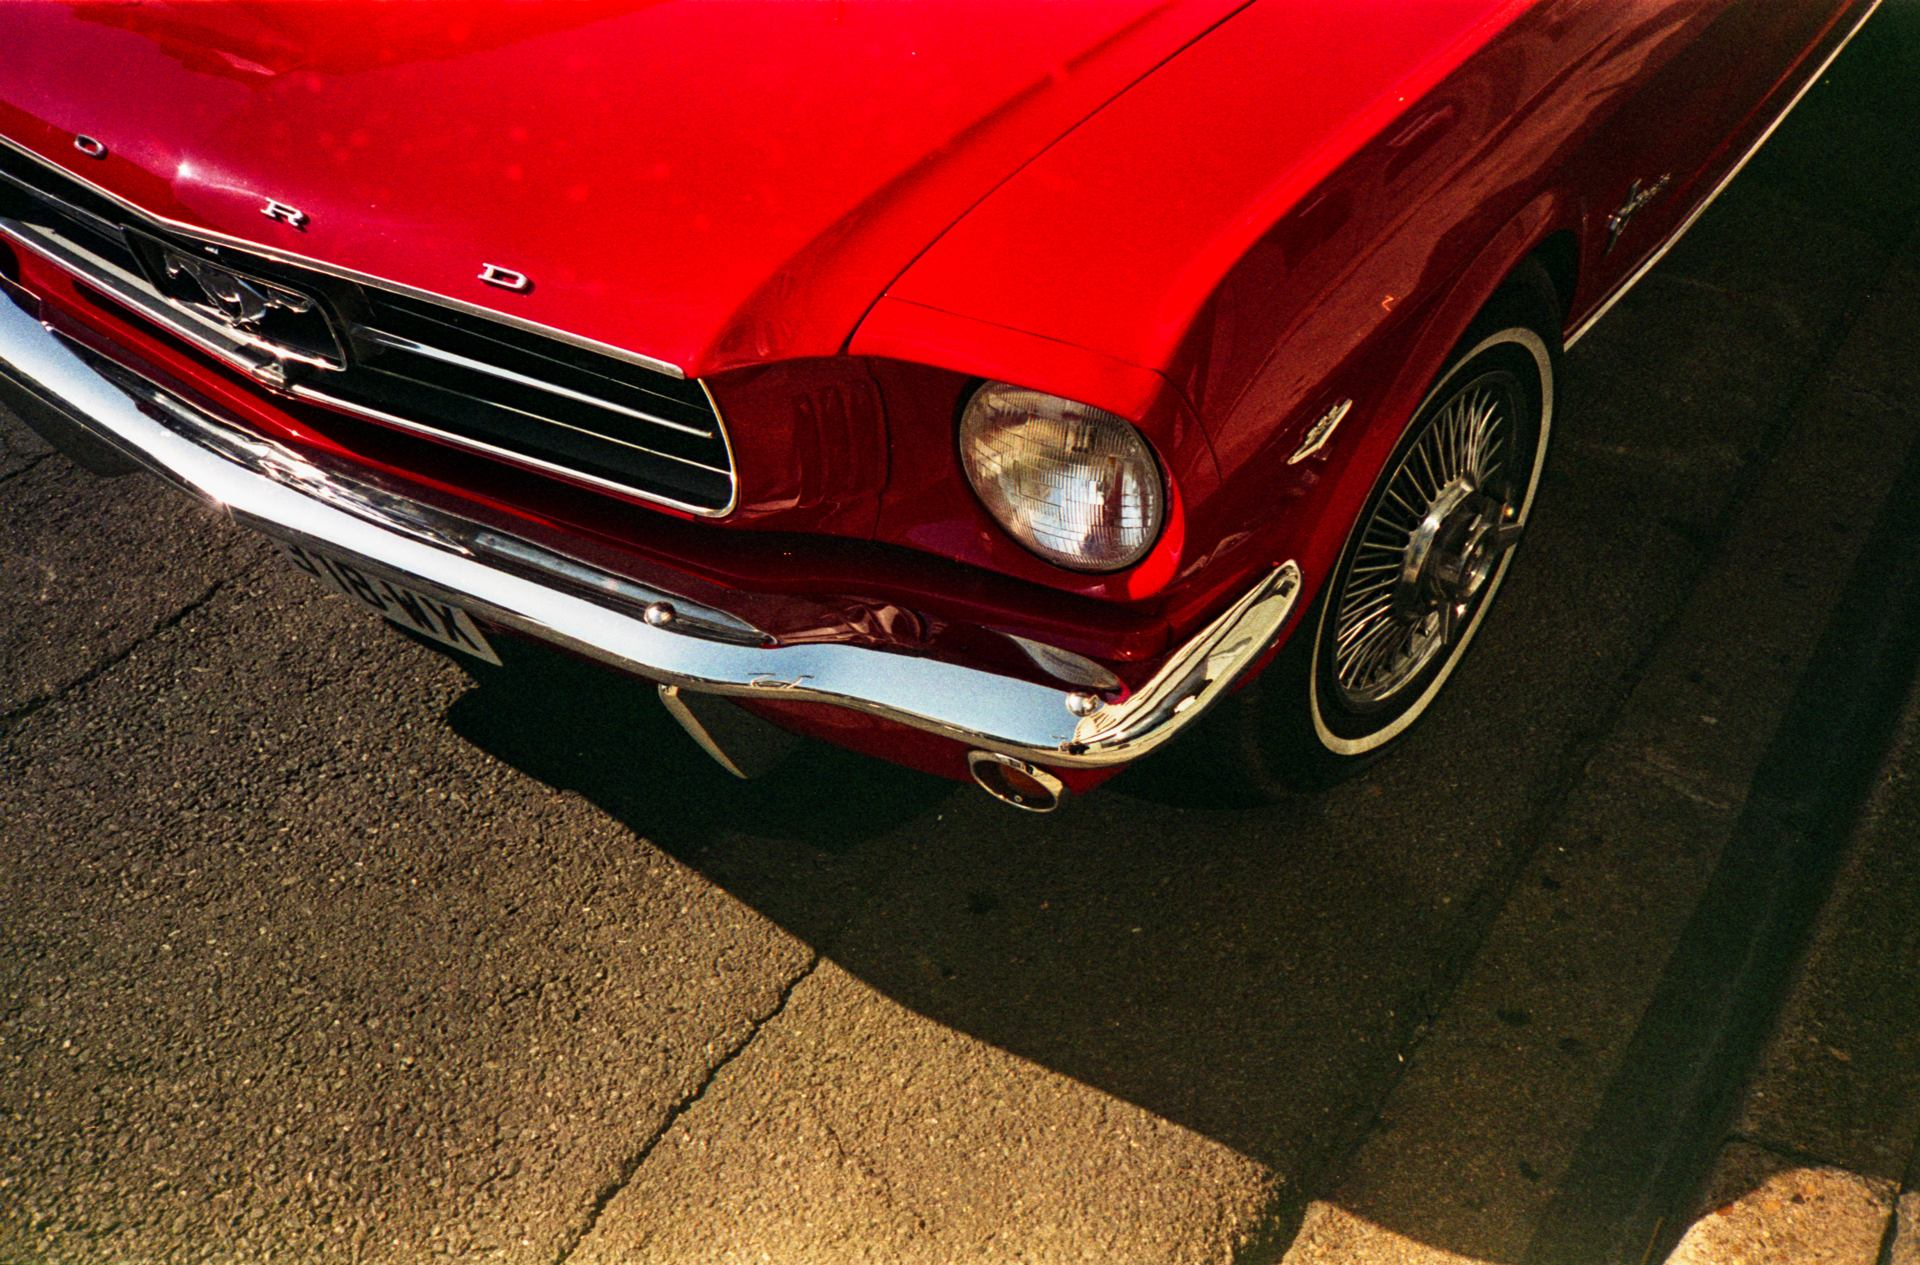 Ford Mustang, Angoulême, 2019